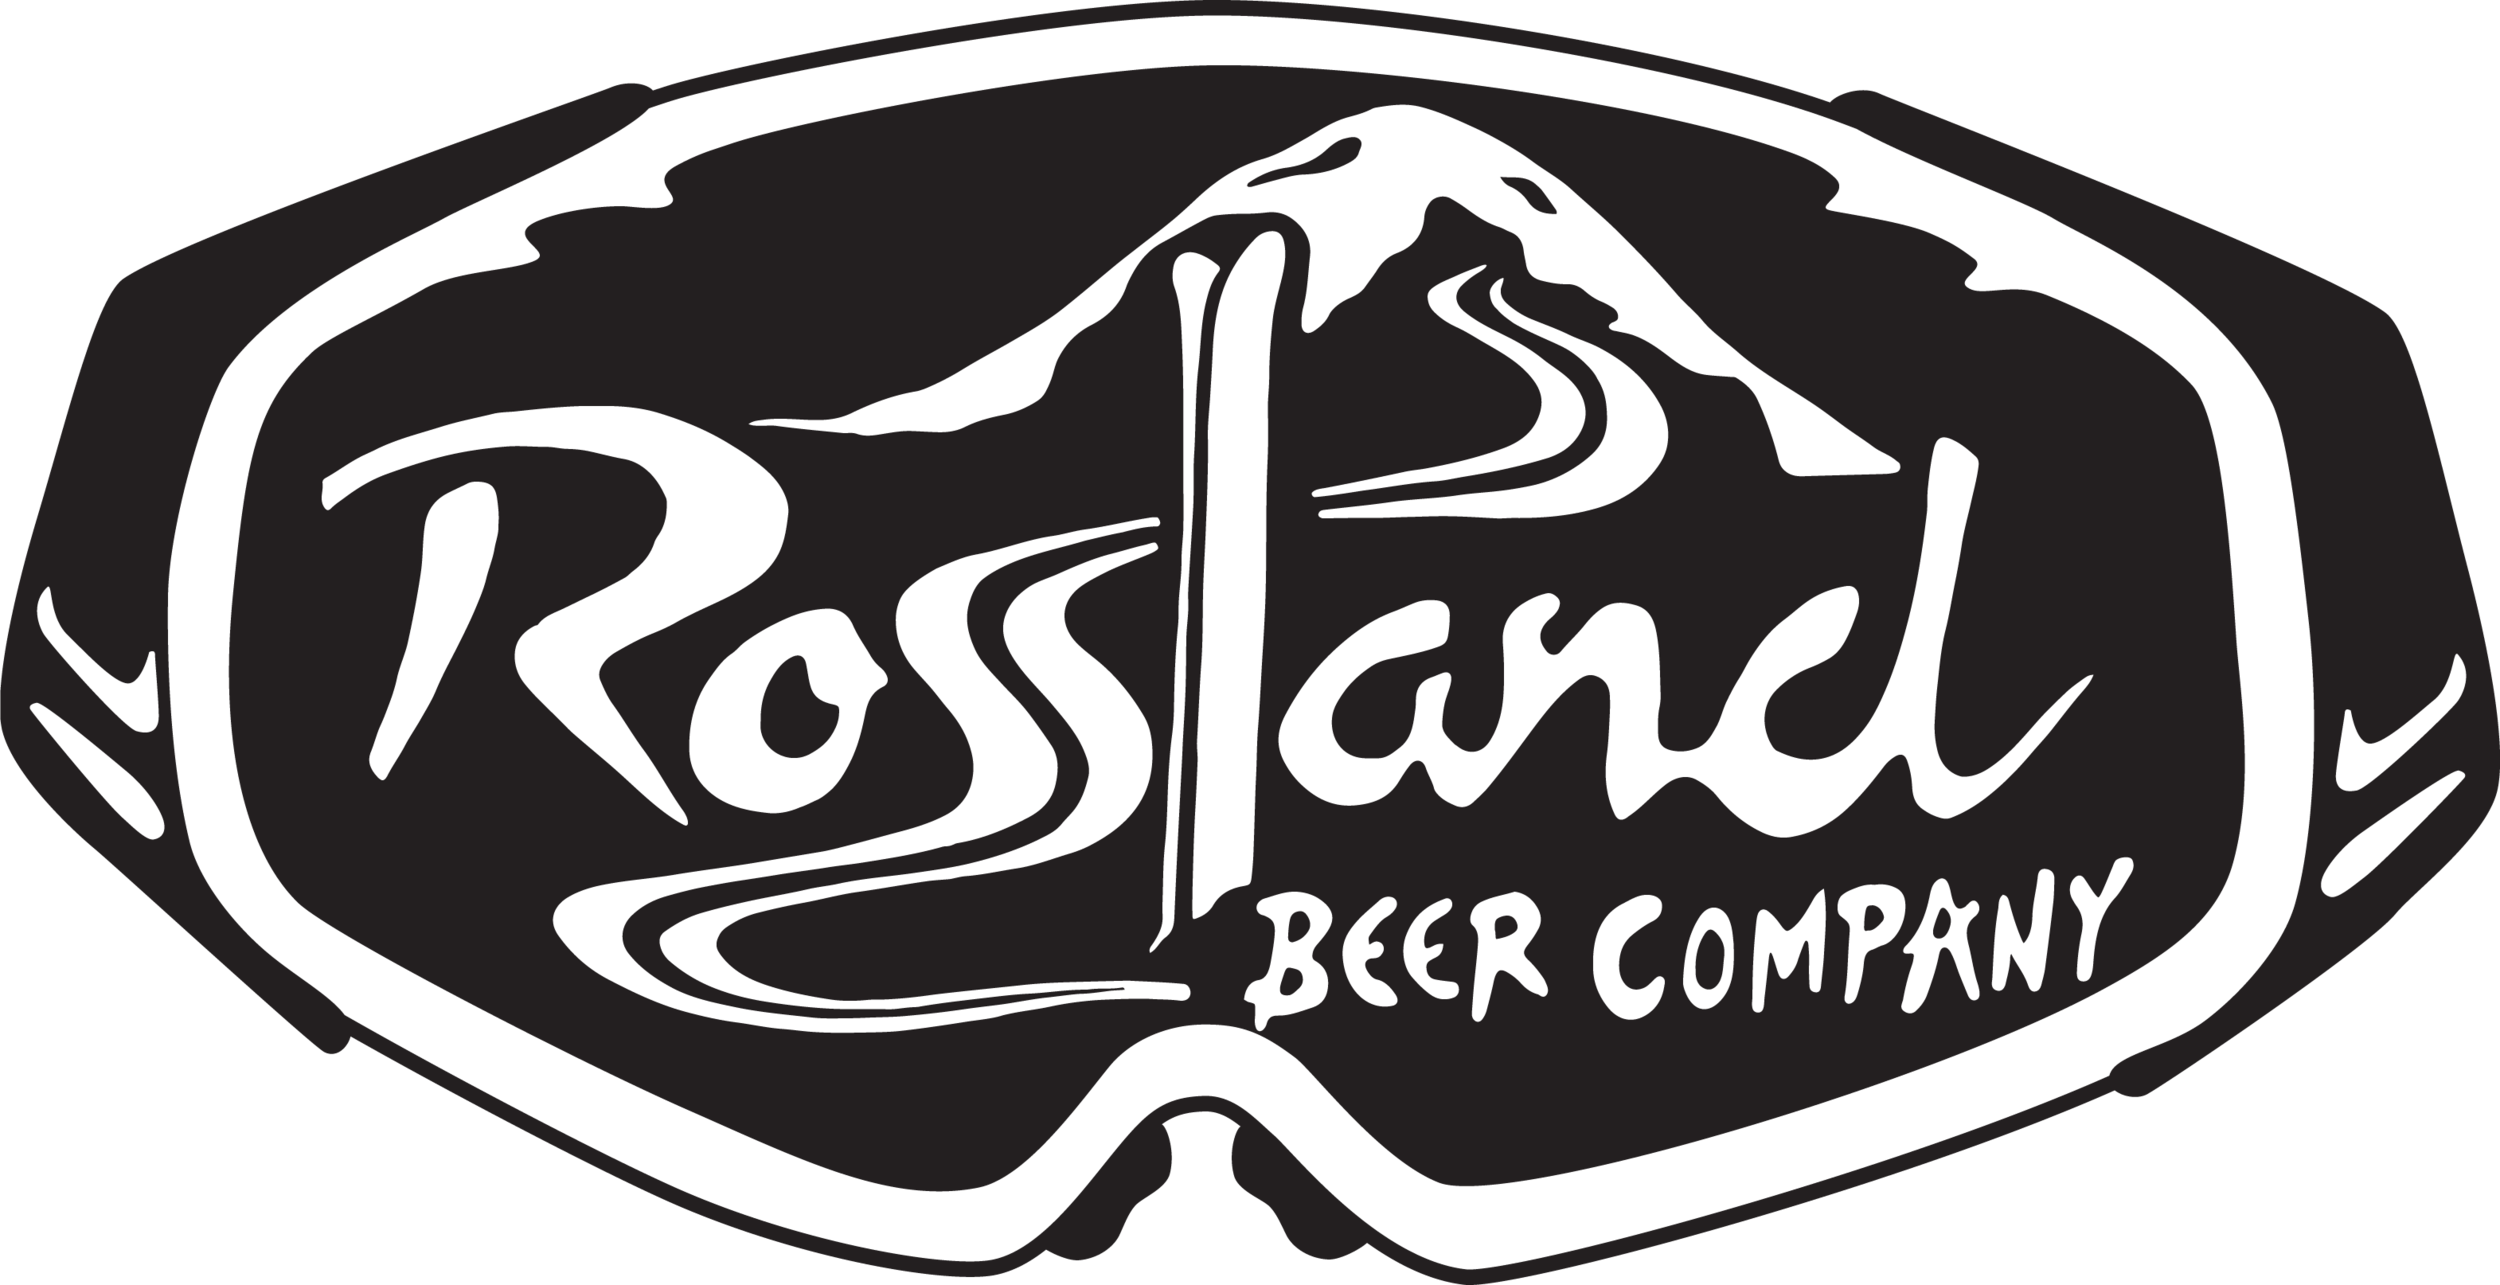 rossland beer co goggles logo (vector).png